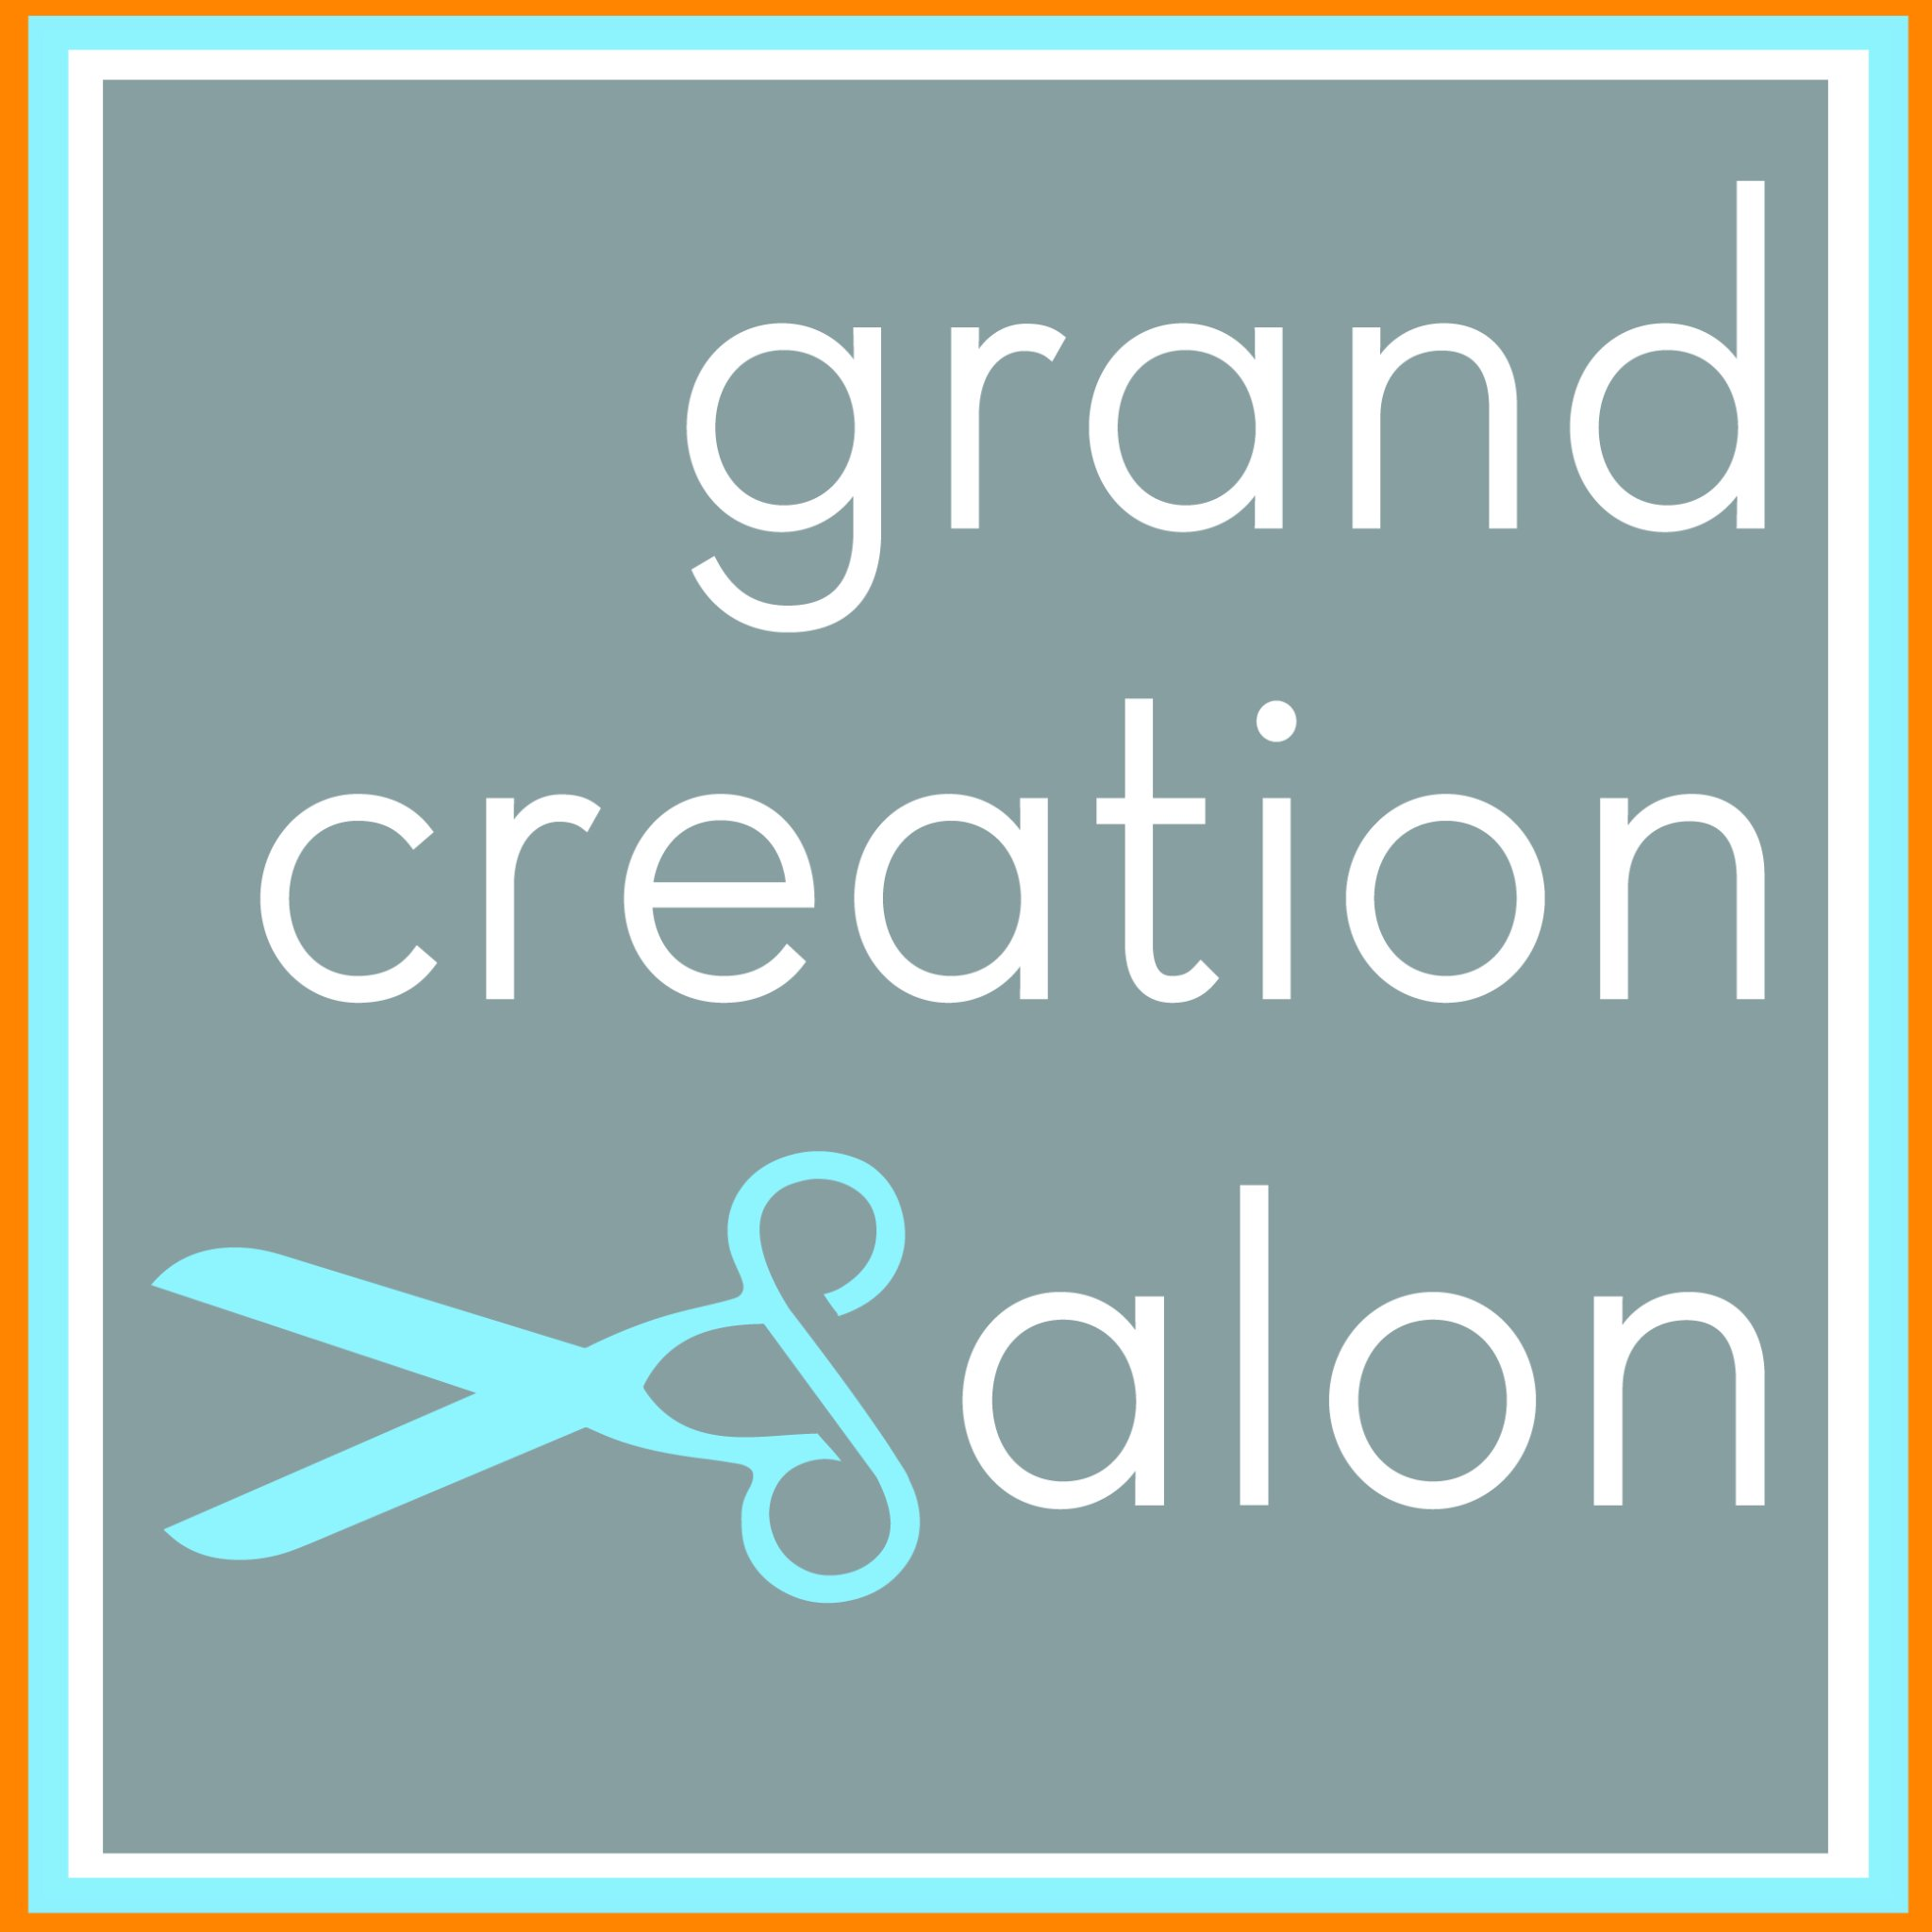 Salon Creation Grand Creation Salon 1010grandsalon Twitter